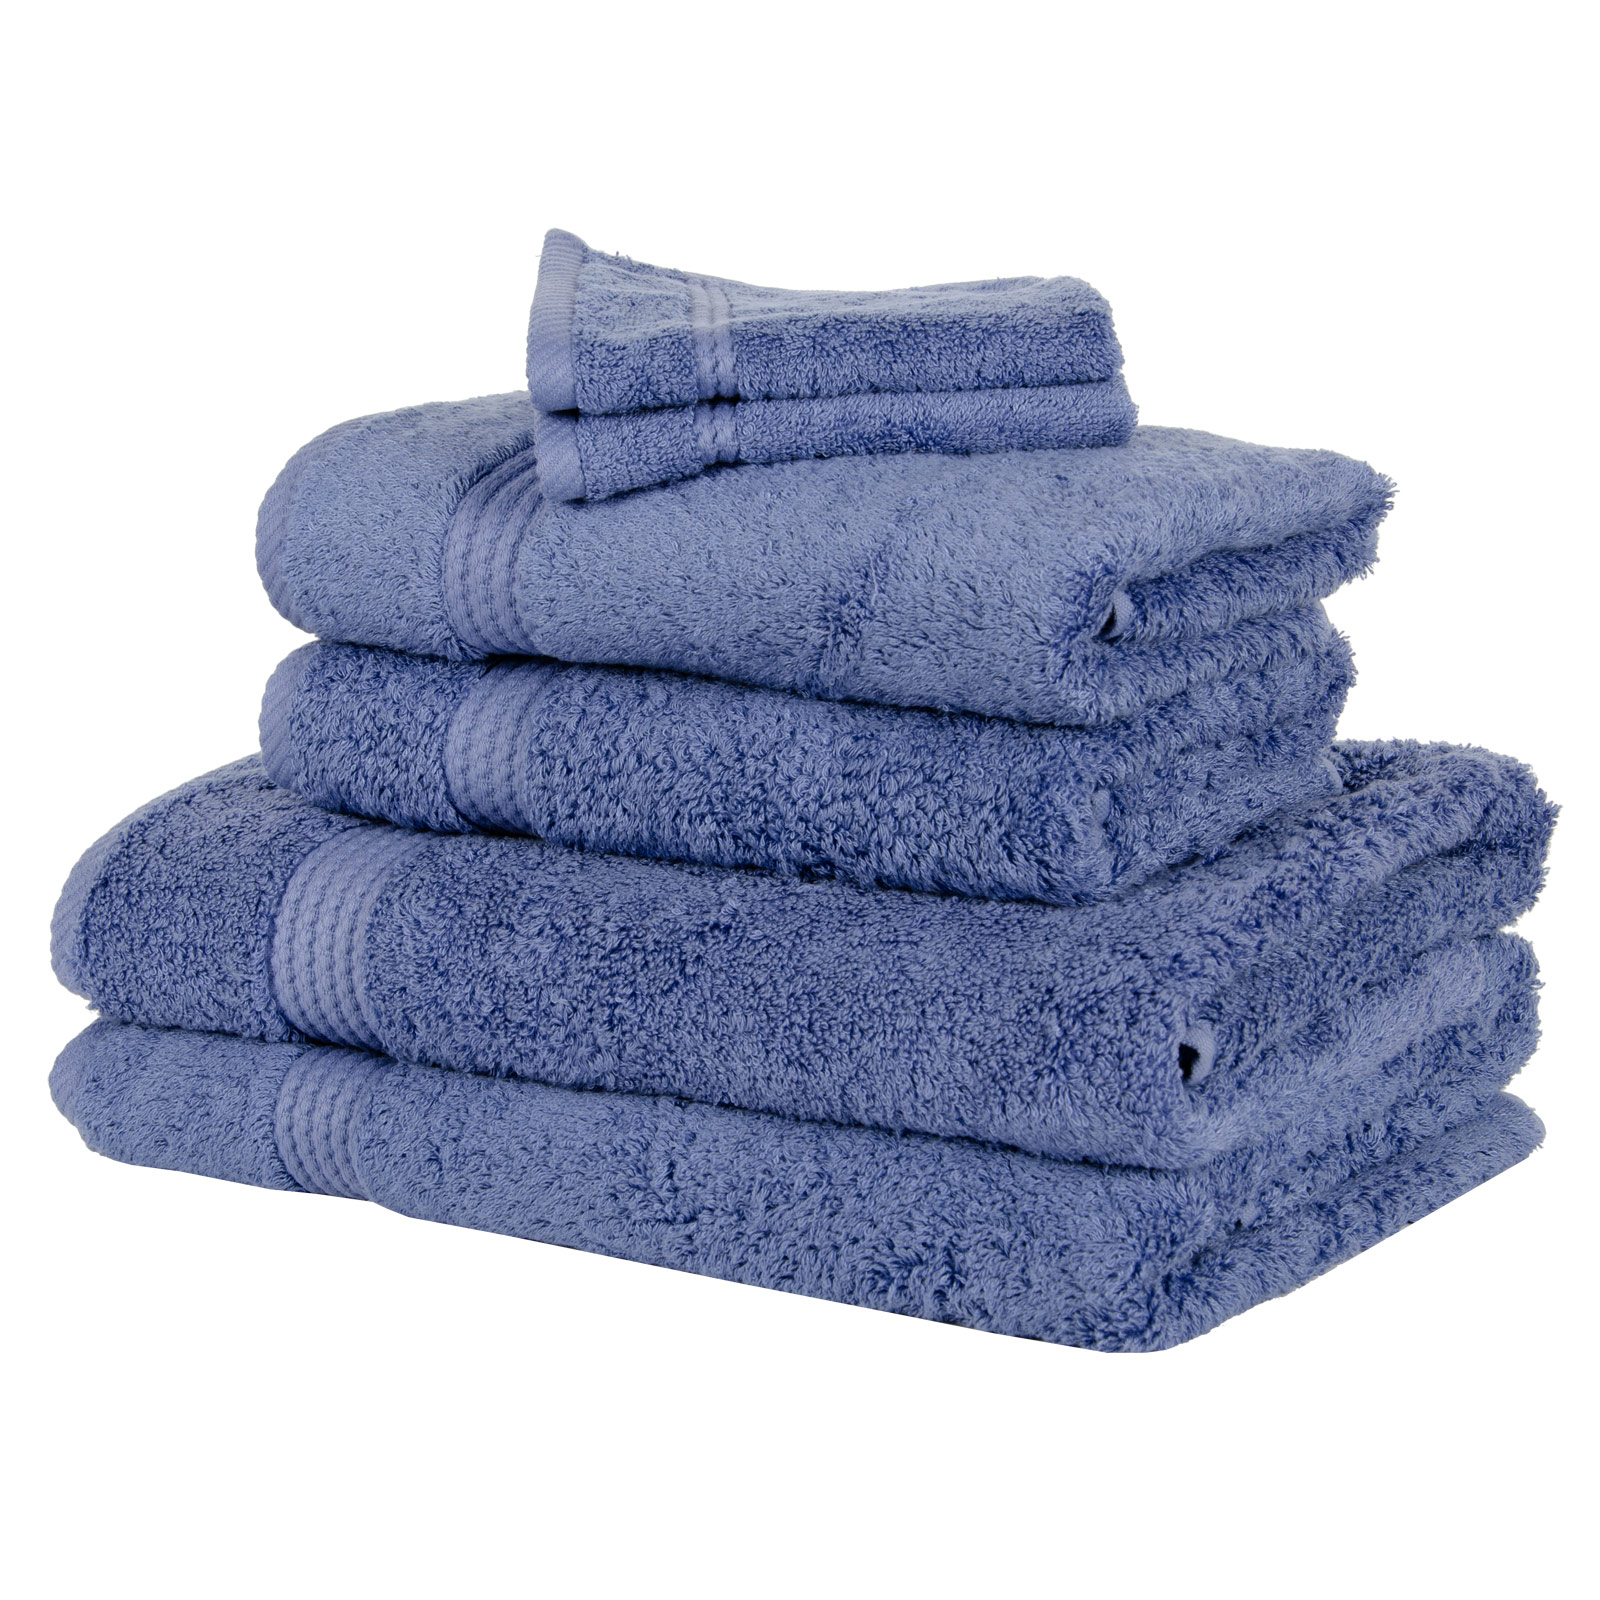 Luxury Soft Bamboo Bathroom Bath Linen Face Cloth Flannel